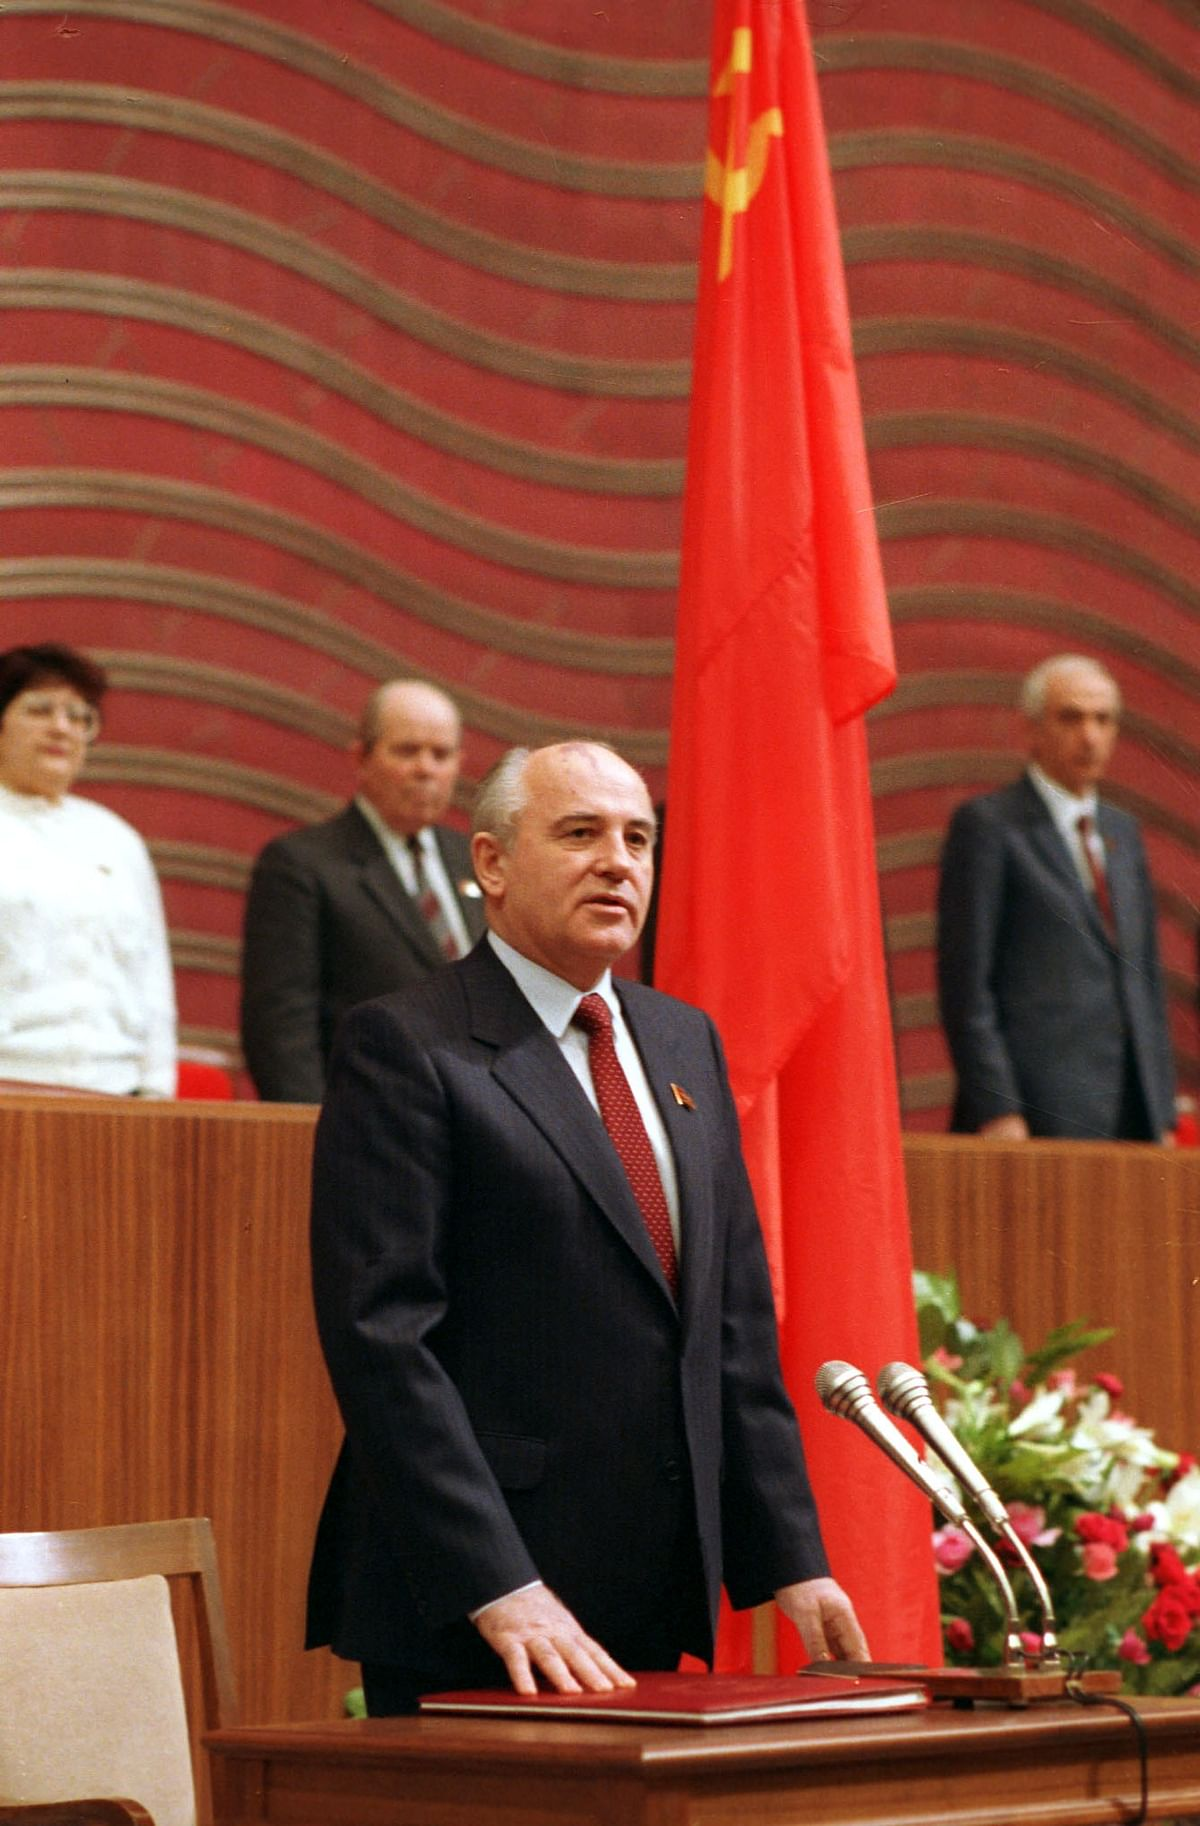 Mikhail Gorbachev was sworn in as the eighth President of the Soviet Union on 15 March 1990.